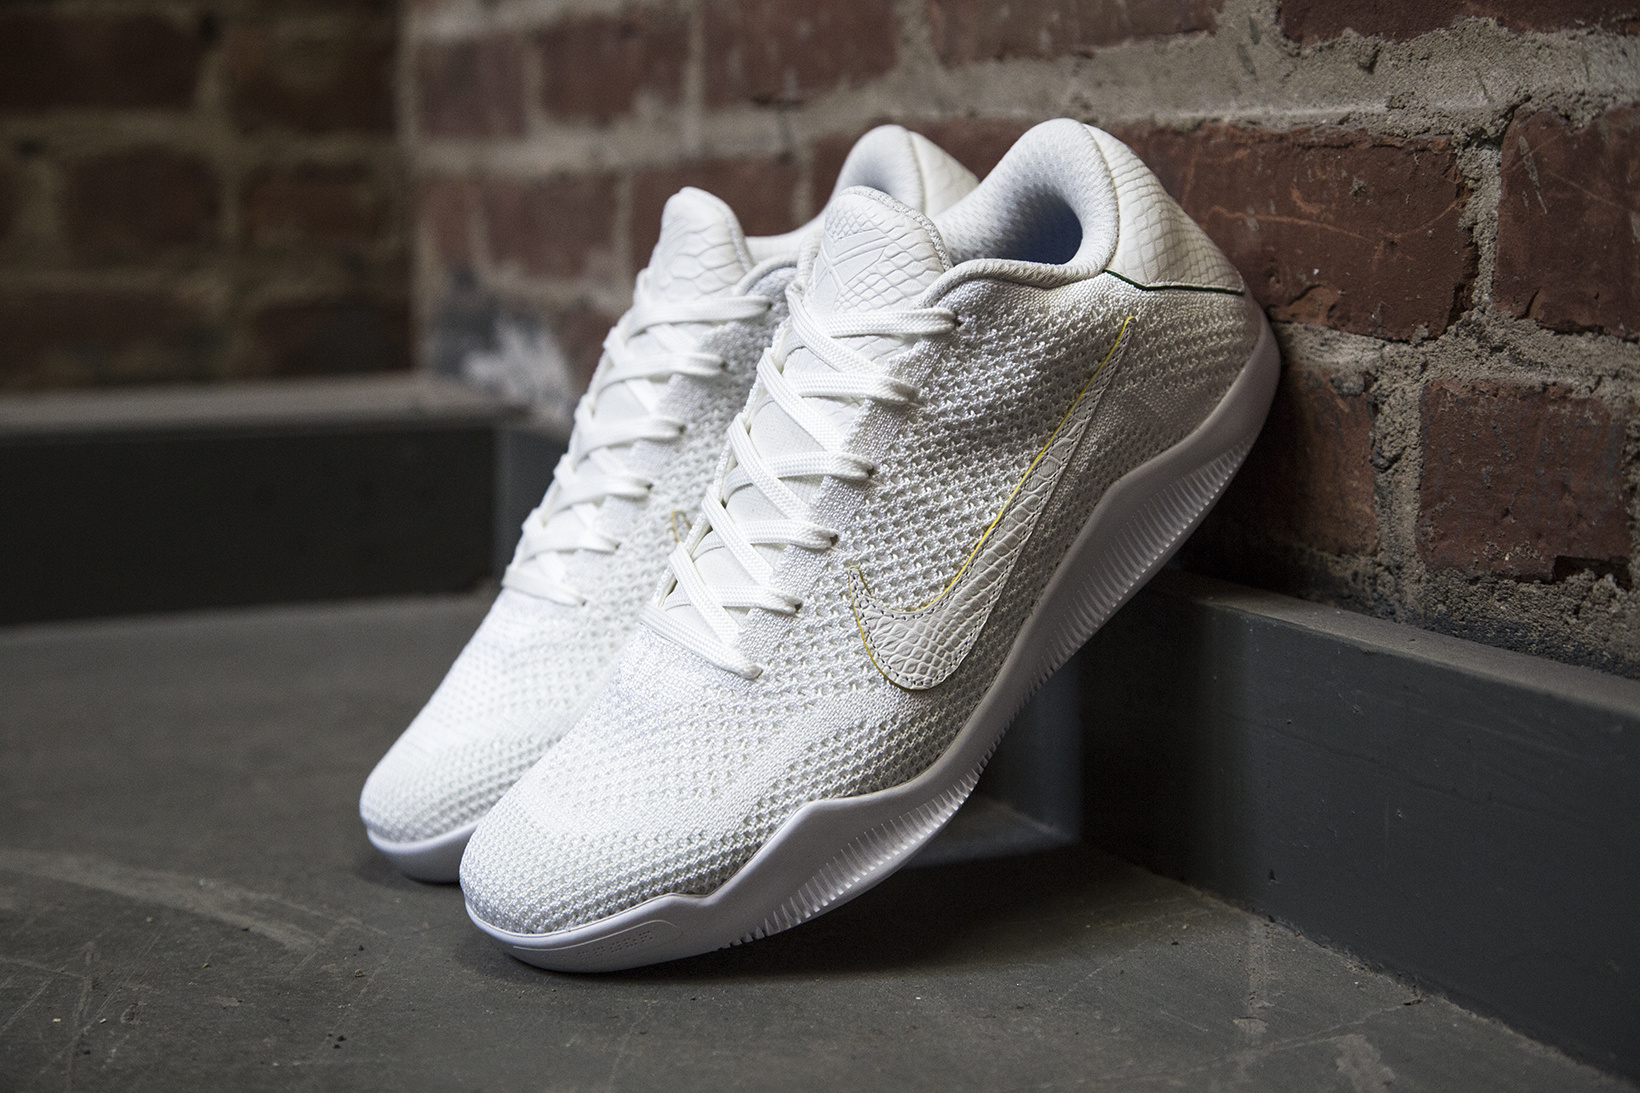 nikelab-kobe-xi-elite-low-brazil-01